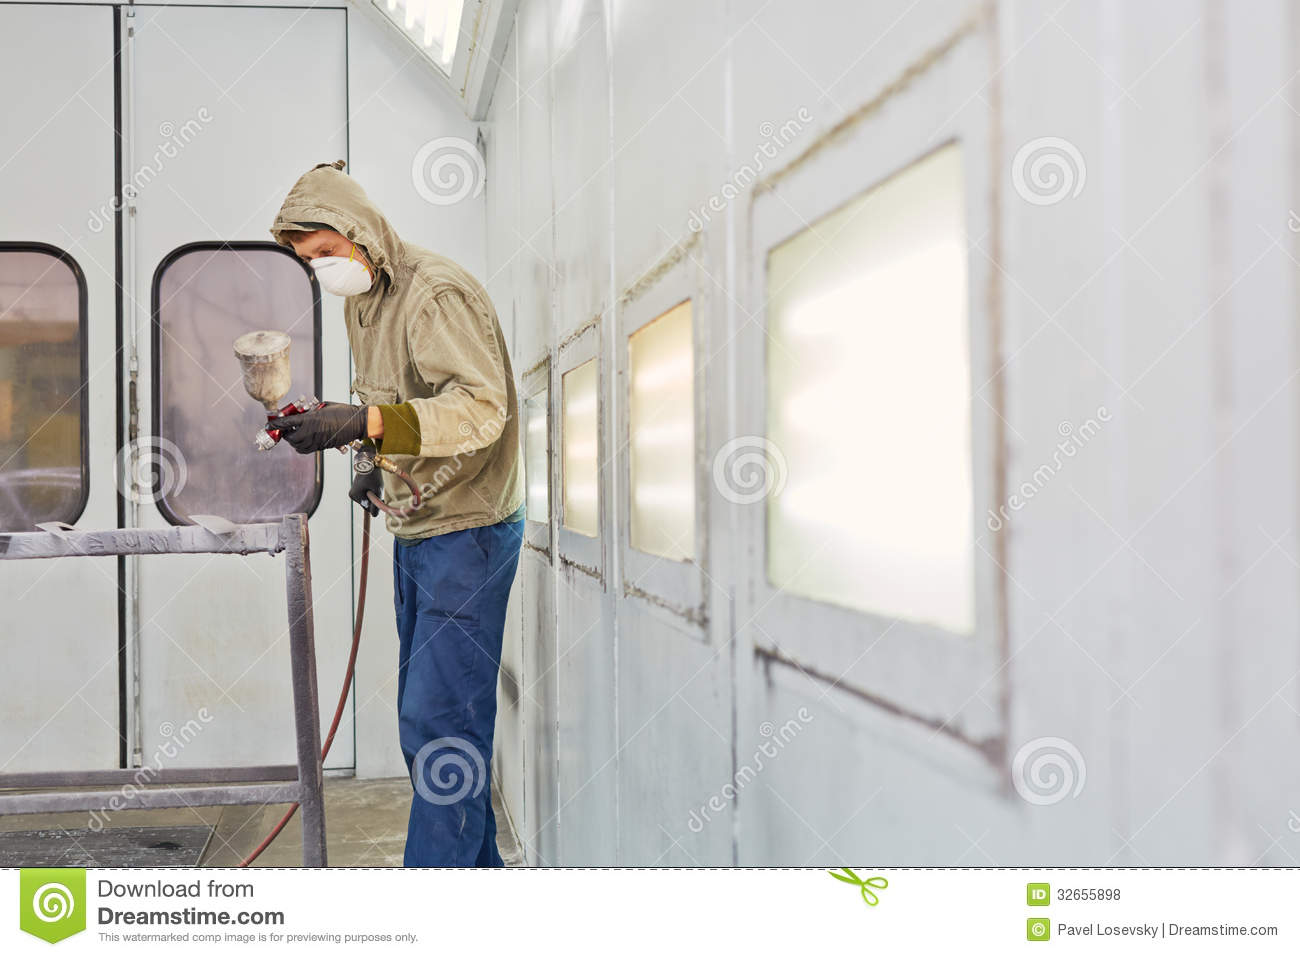 Man works in paint-spraying booth, painting car details